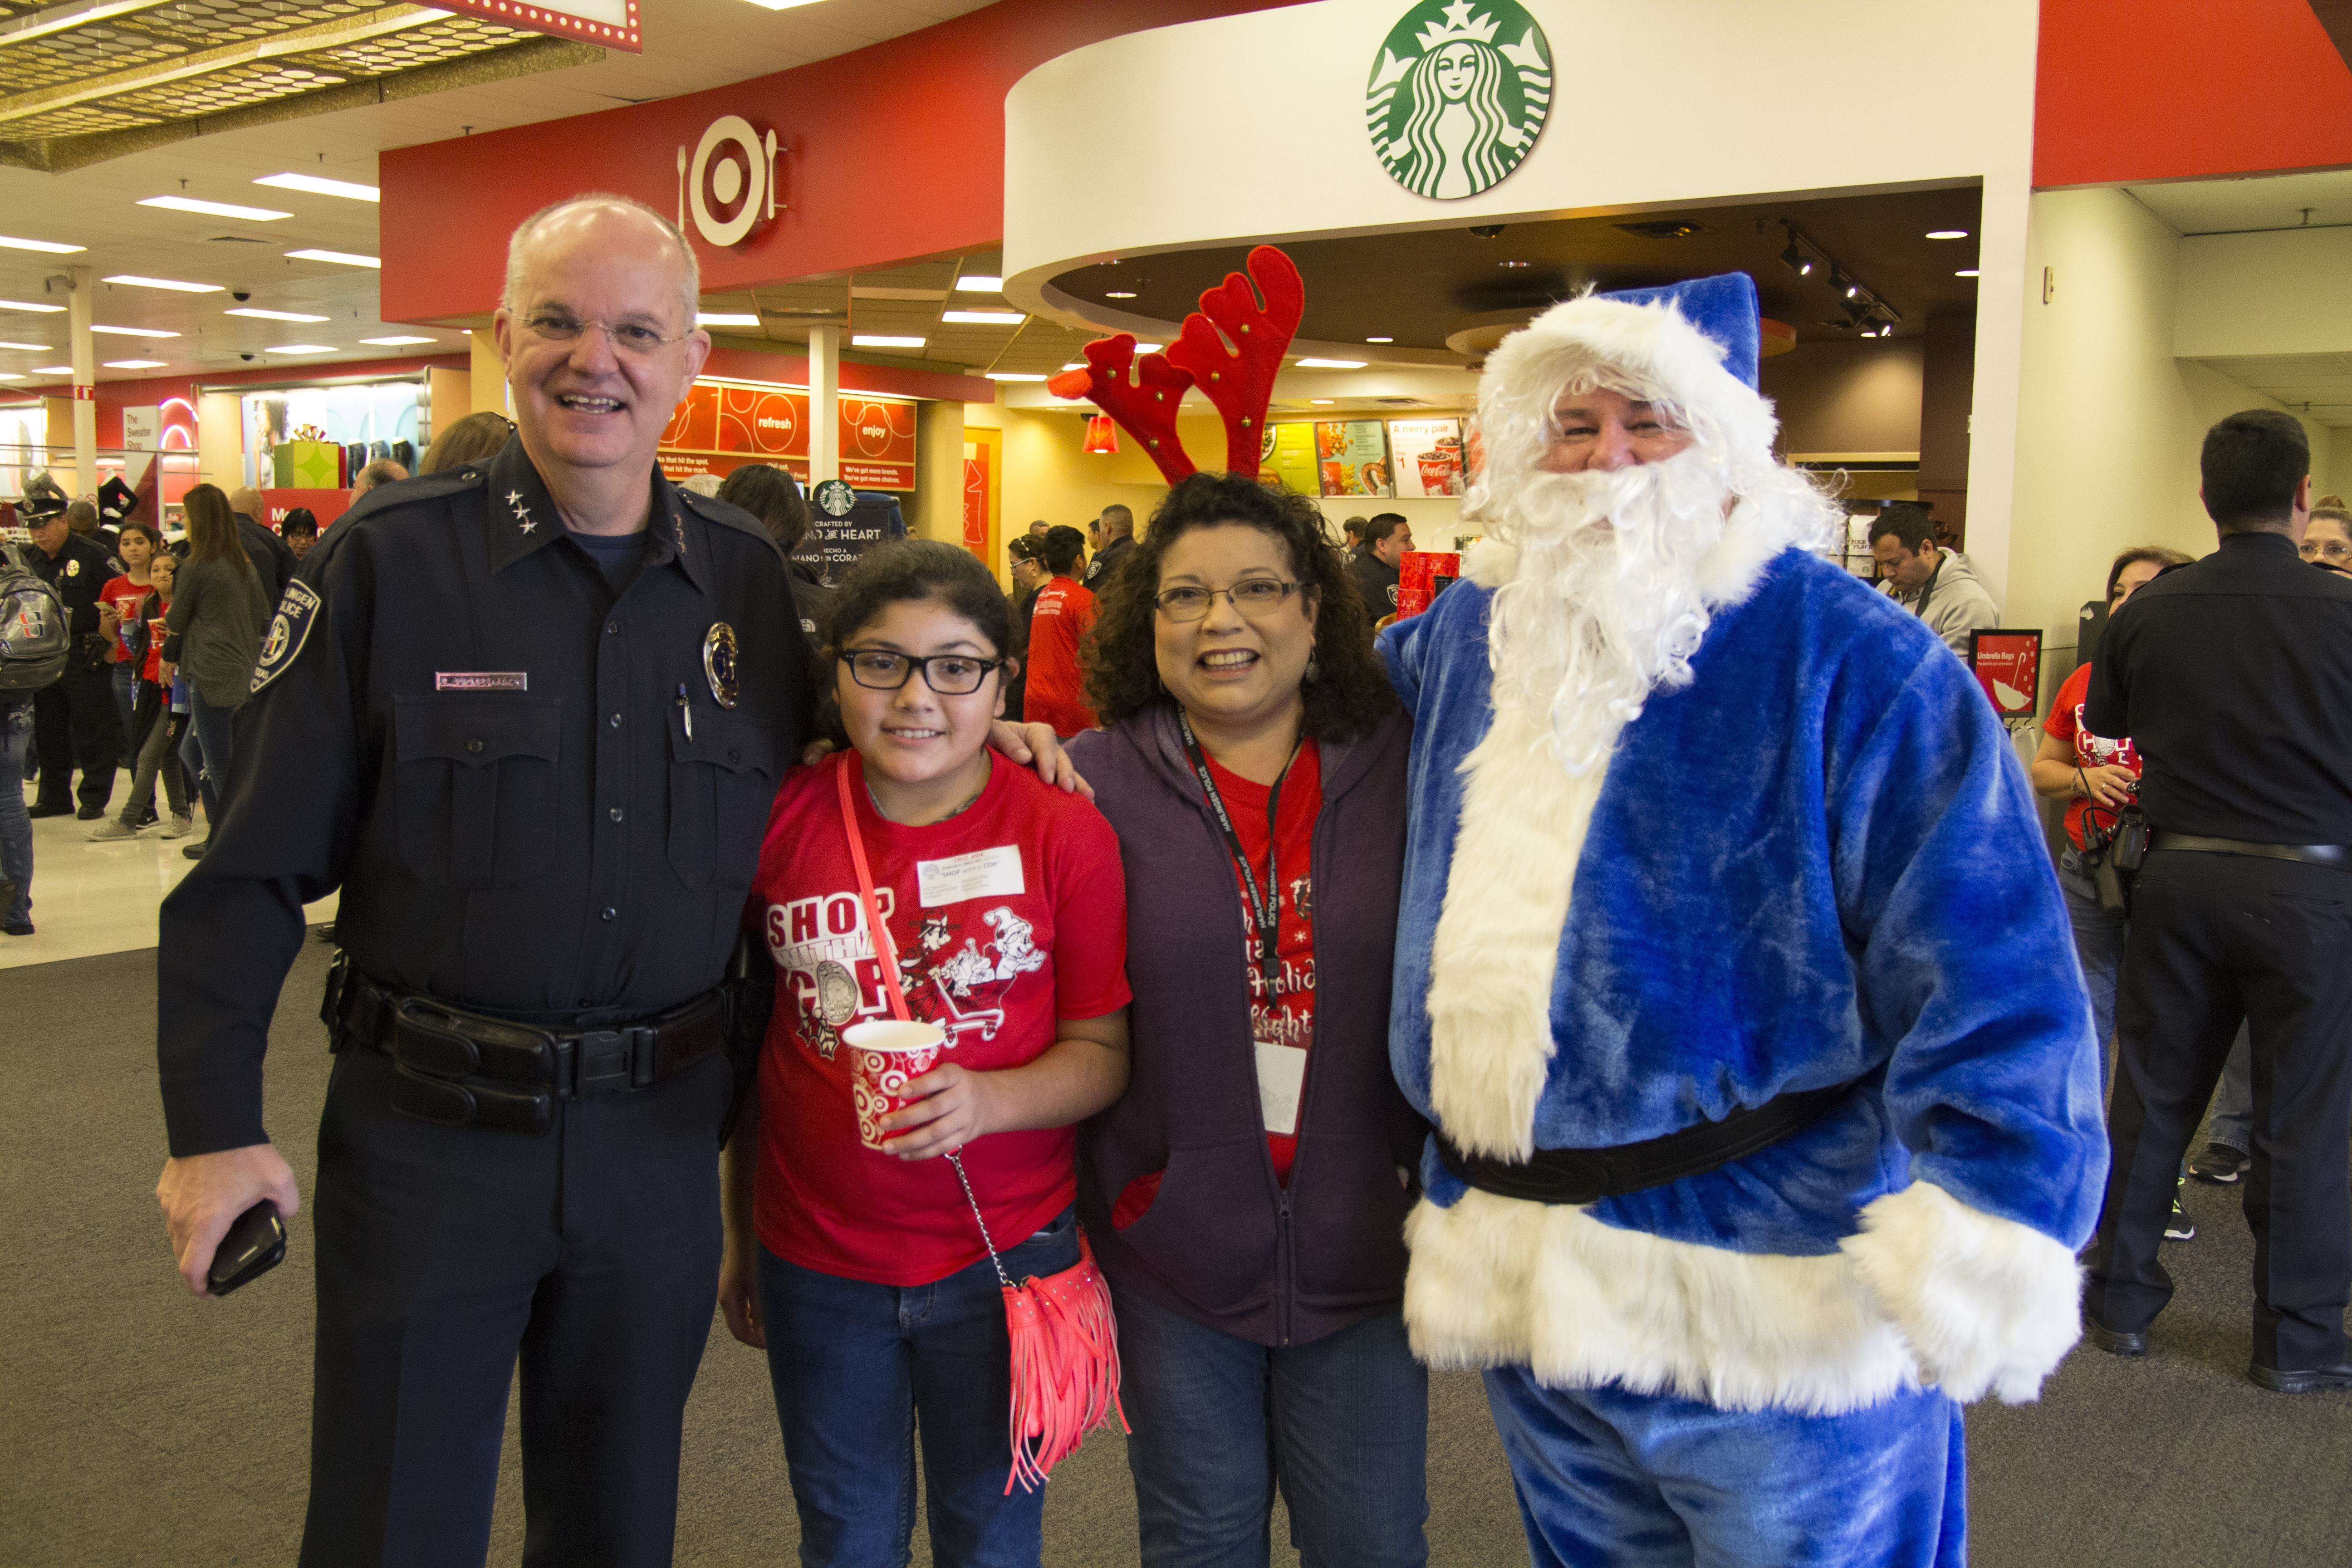 HPD shares the joy of the season through Shop with a Cop event